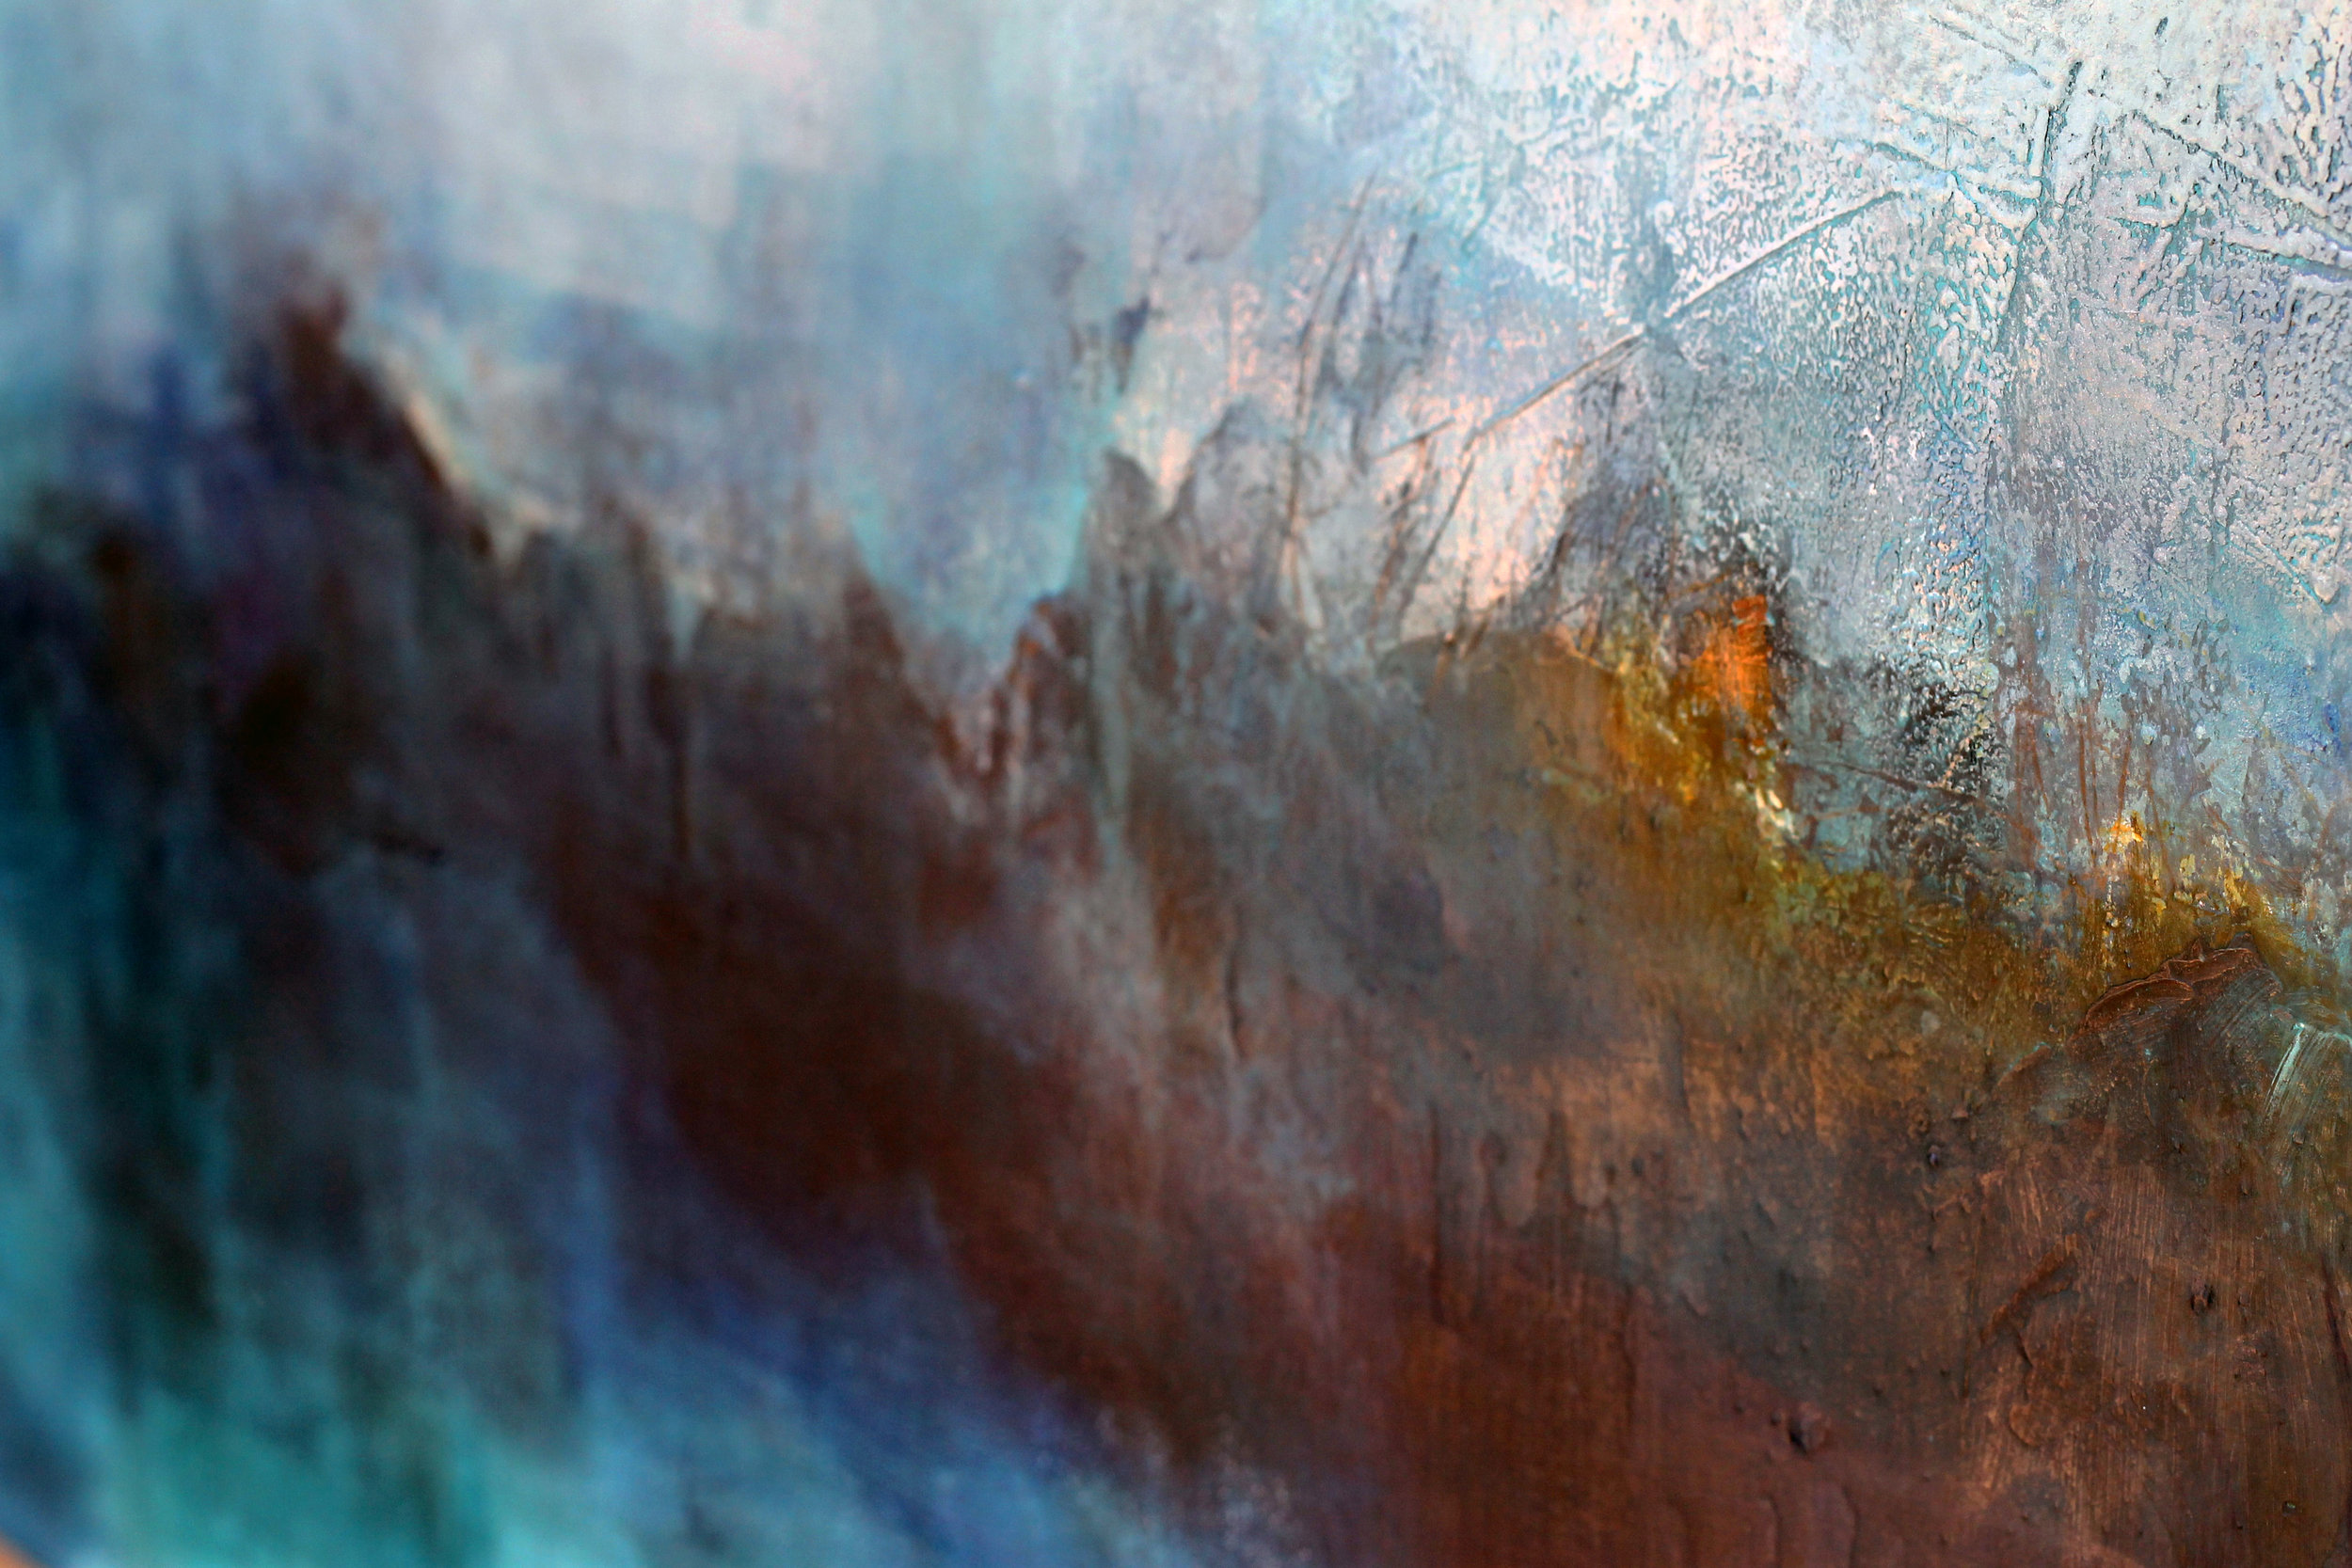 Sky Painting Detail of Texture and Colour